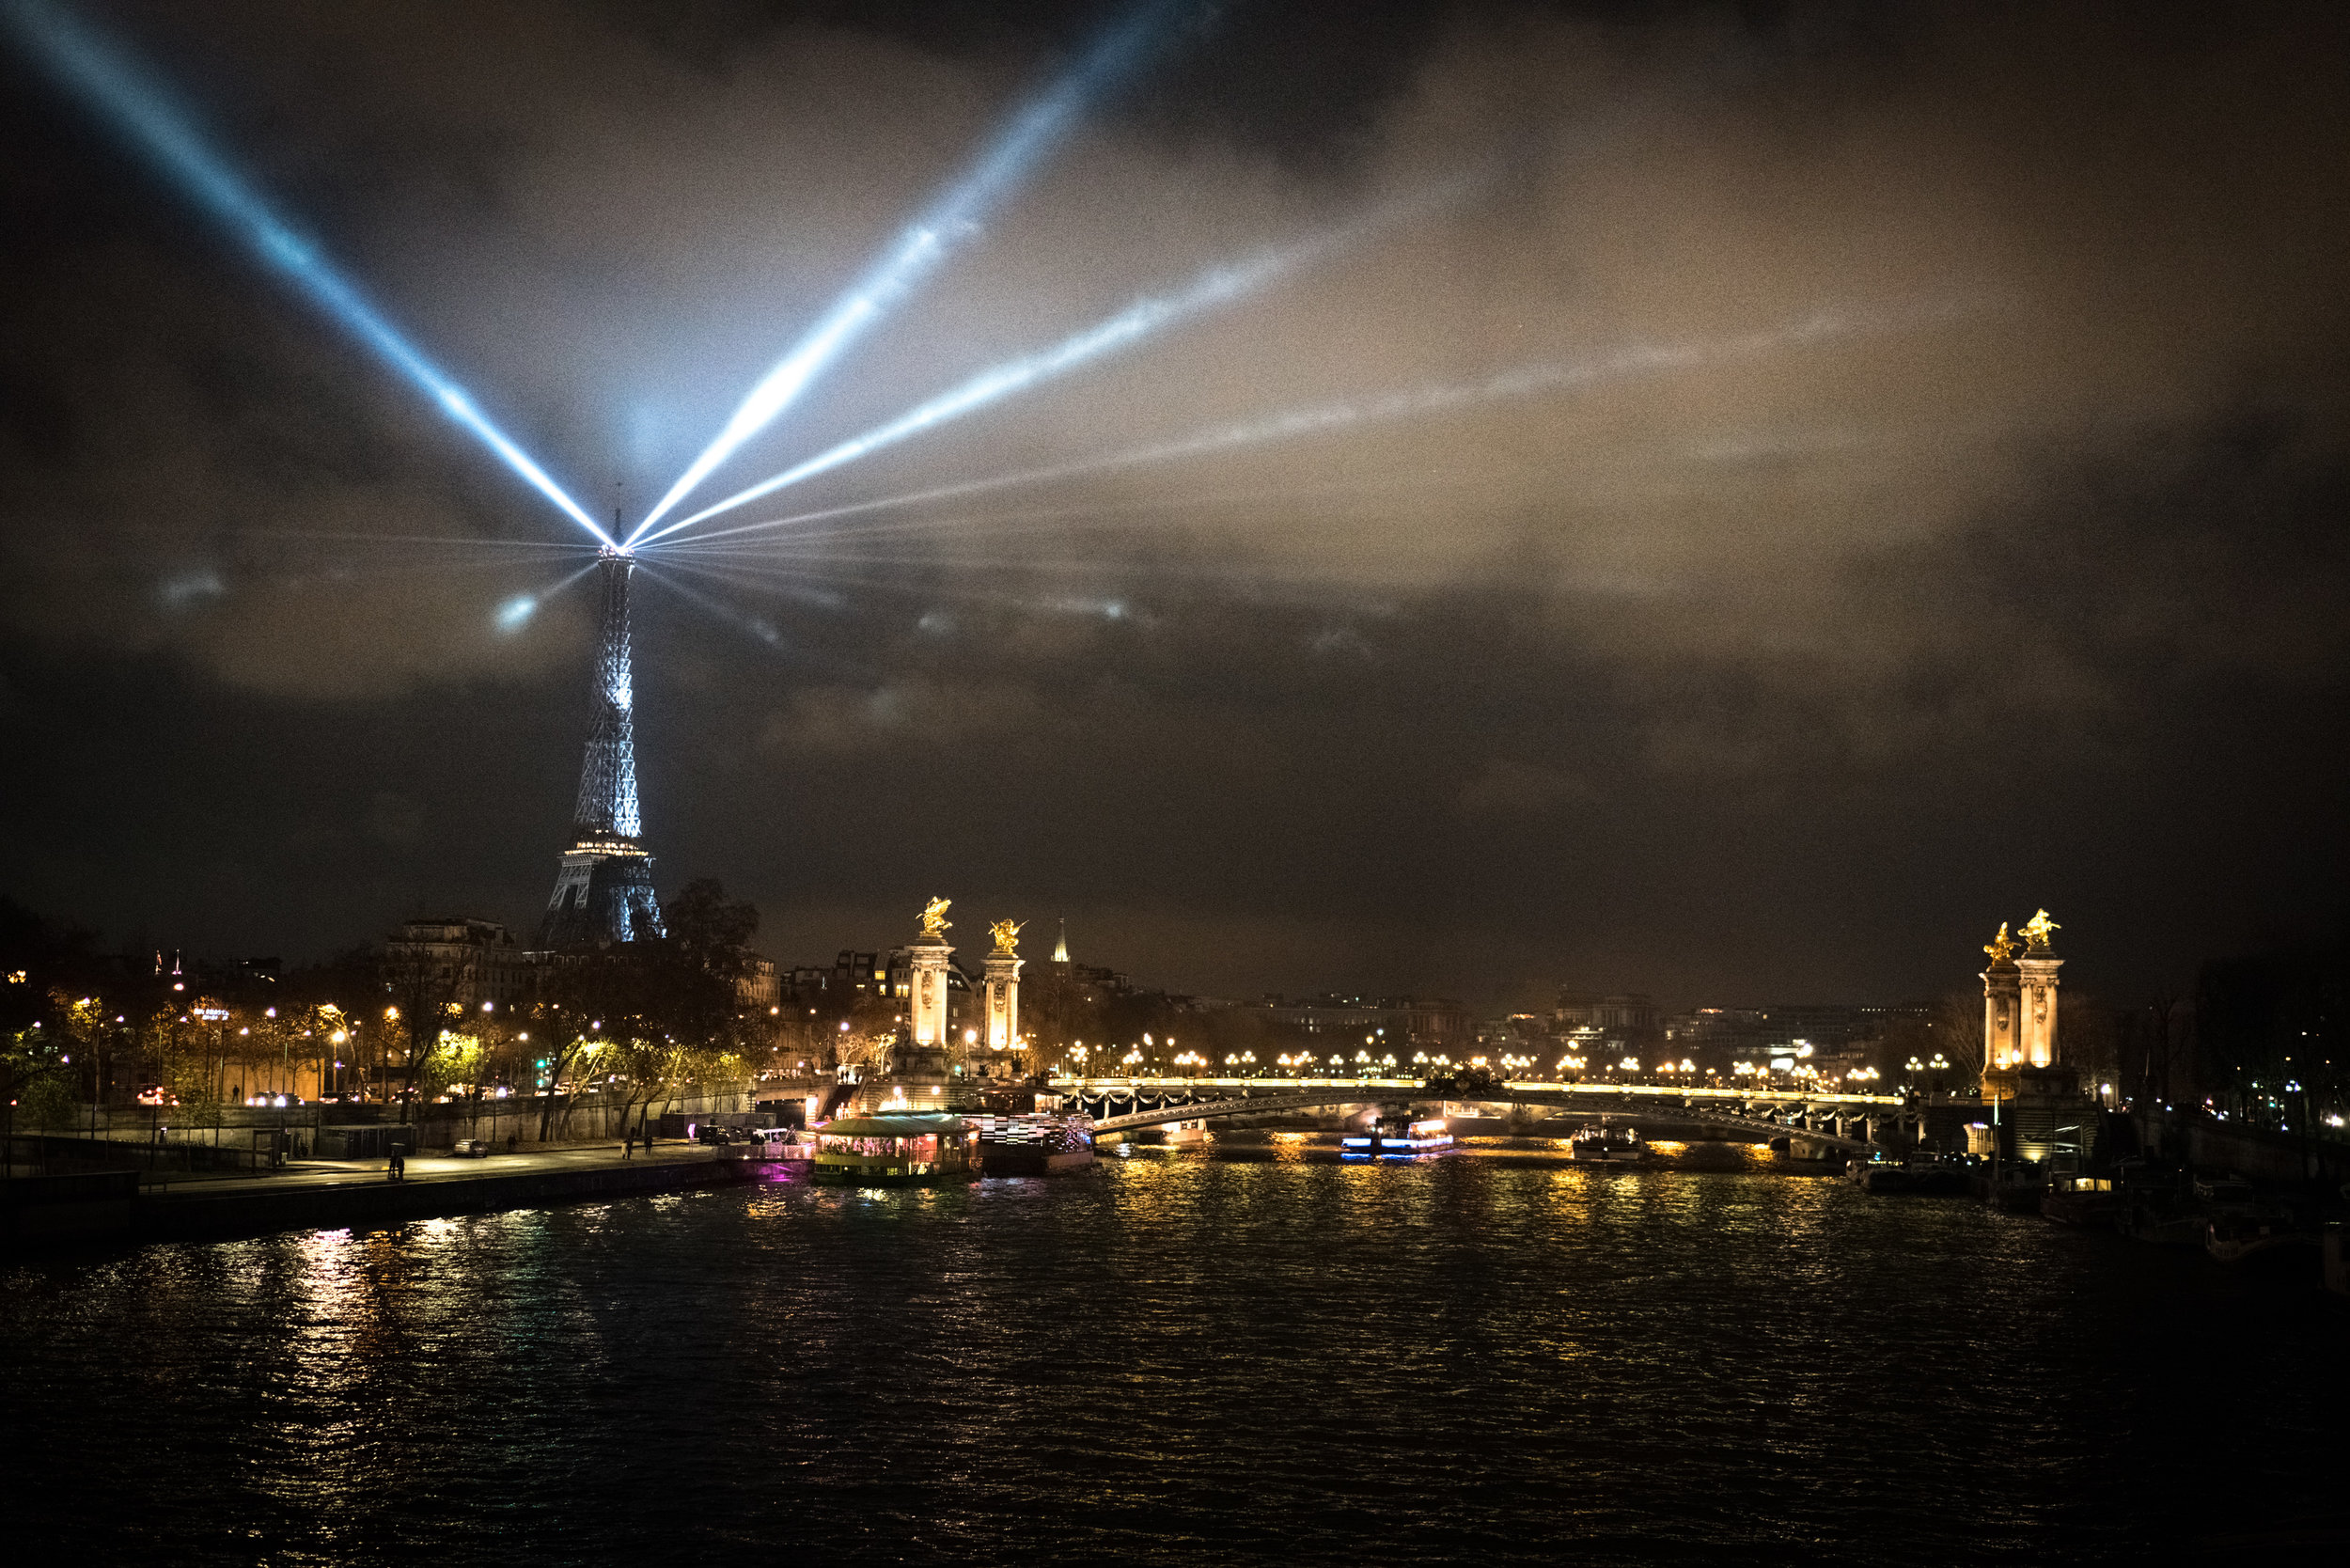 untitled shoot-05844.jpg